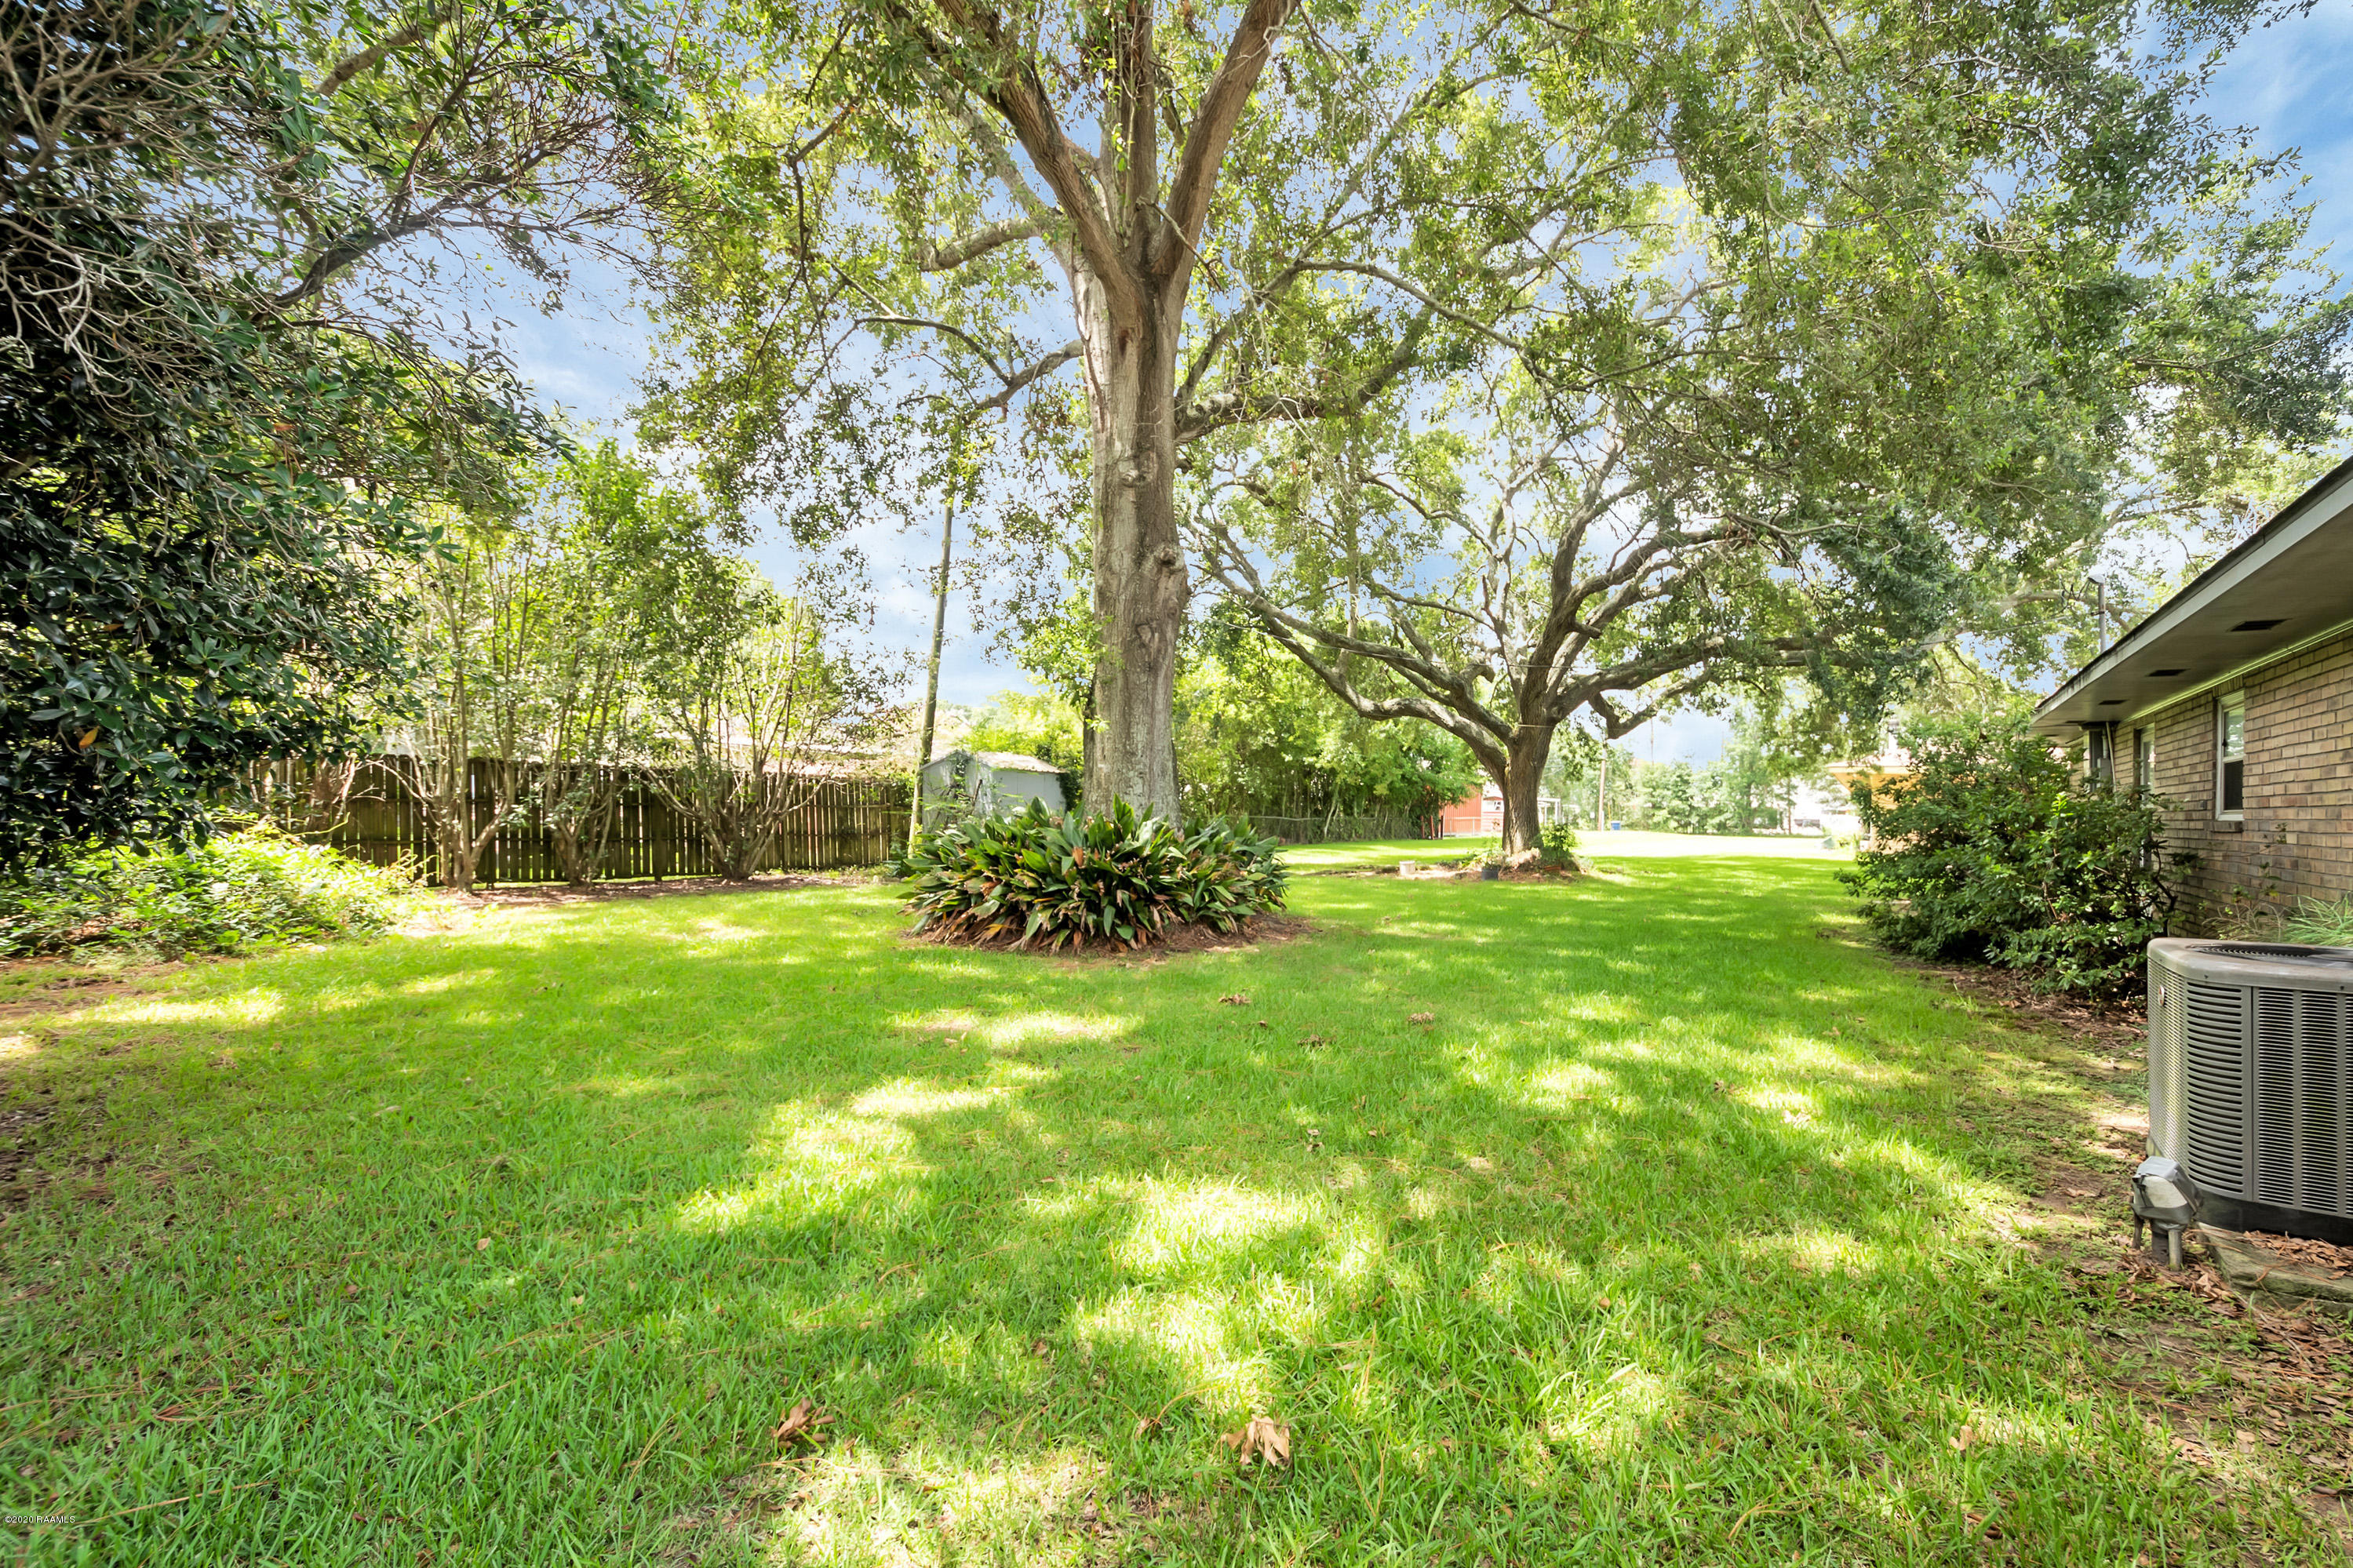 132 Richlieu Circle, Kaplan, LA 70548 Photo #13